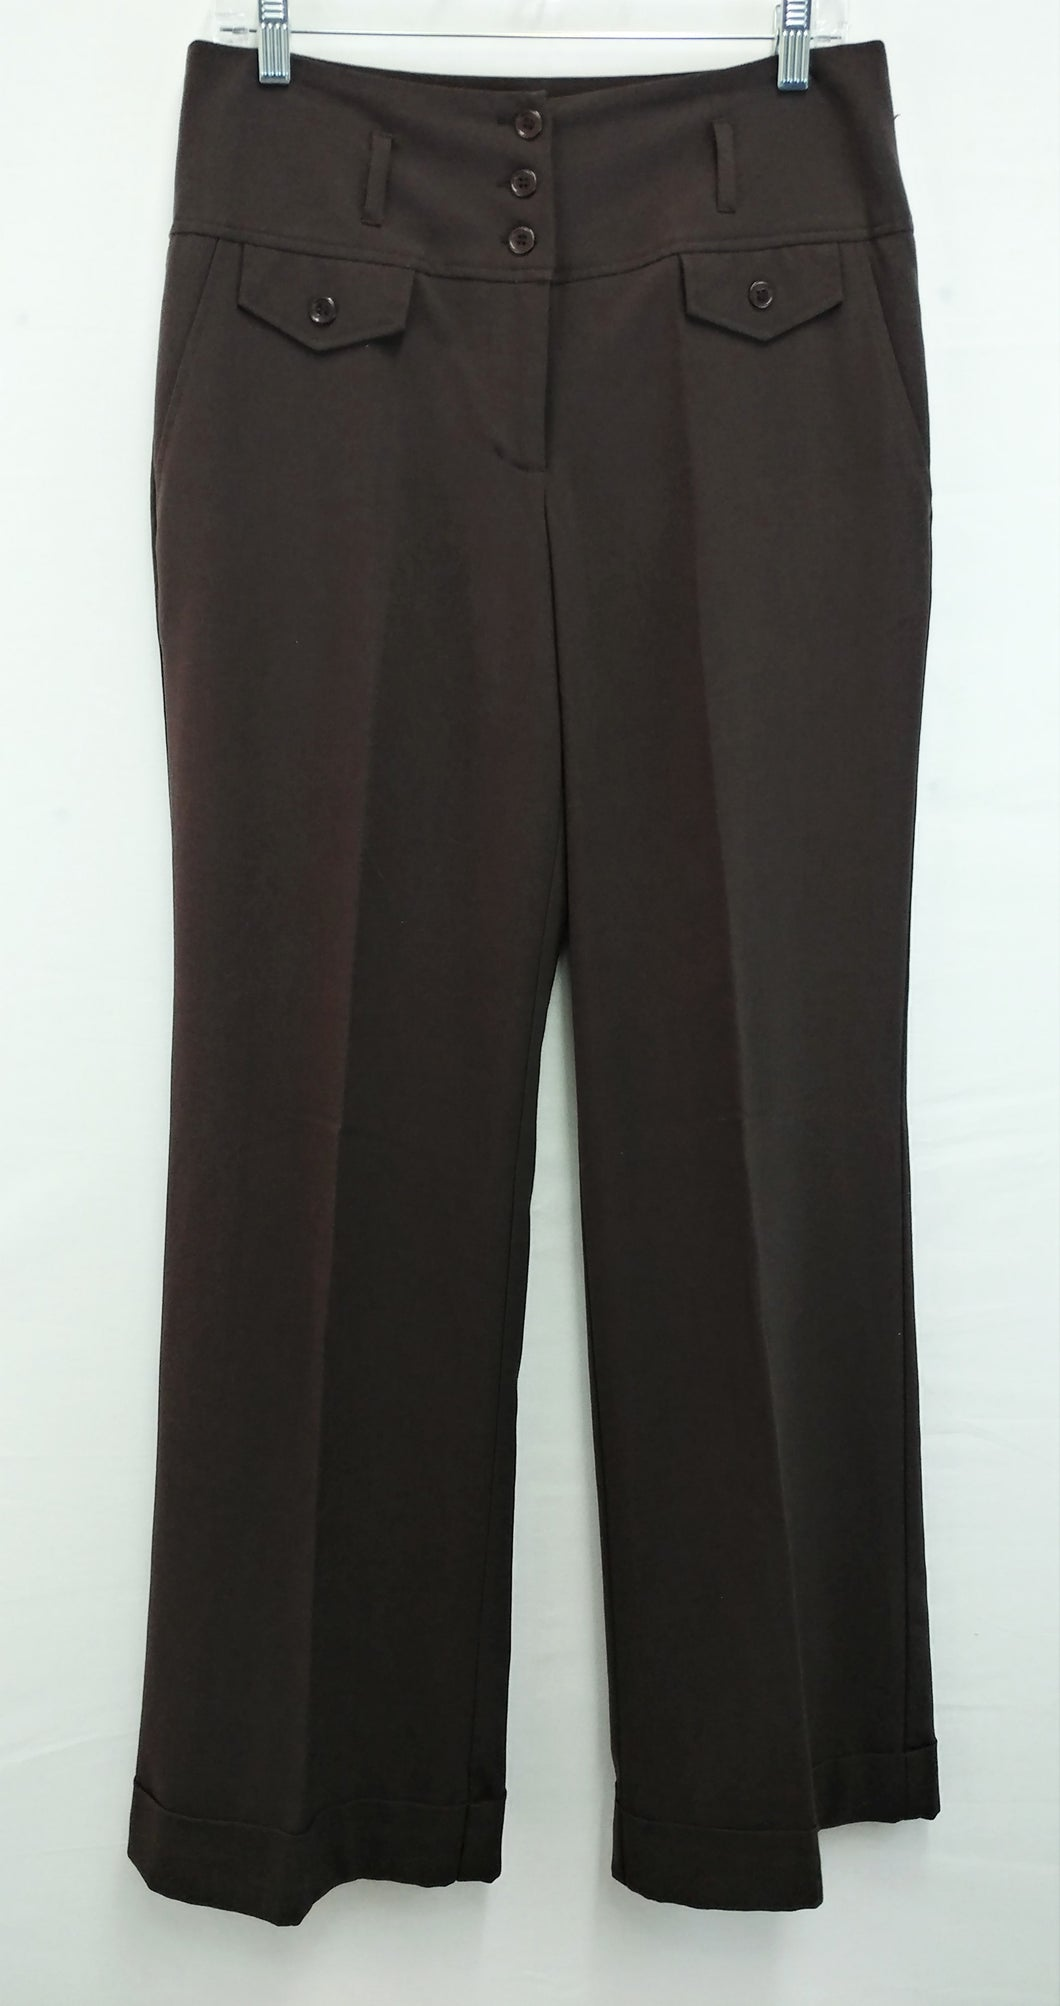 Uniform John Paul Richard Women Pants, Size 8, brown, polyester blend